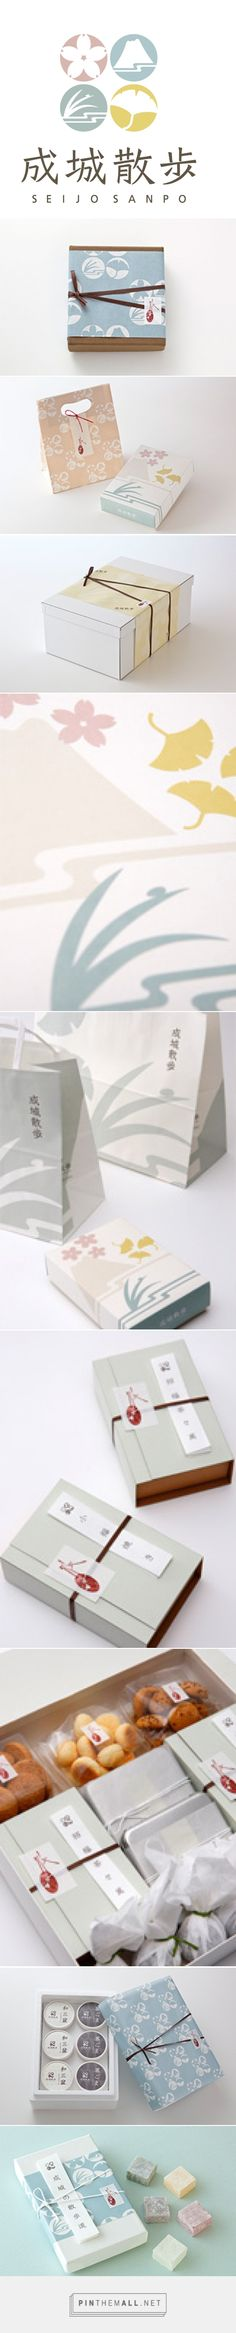 SEIJO SANPO | WORKS | AWATSUJI design curated by Packaging Diva PD. Yummy…